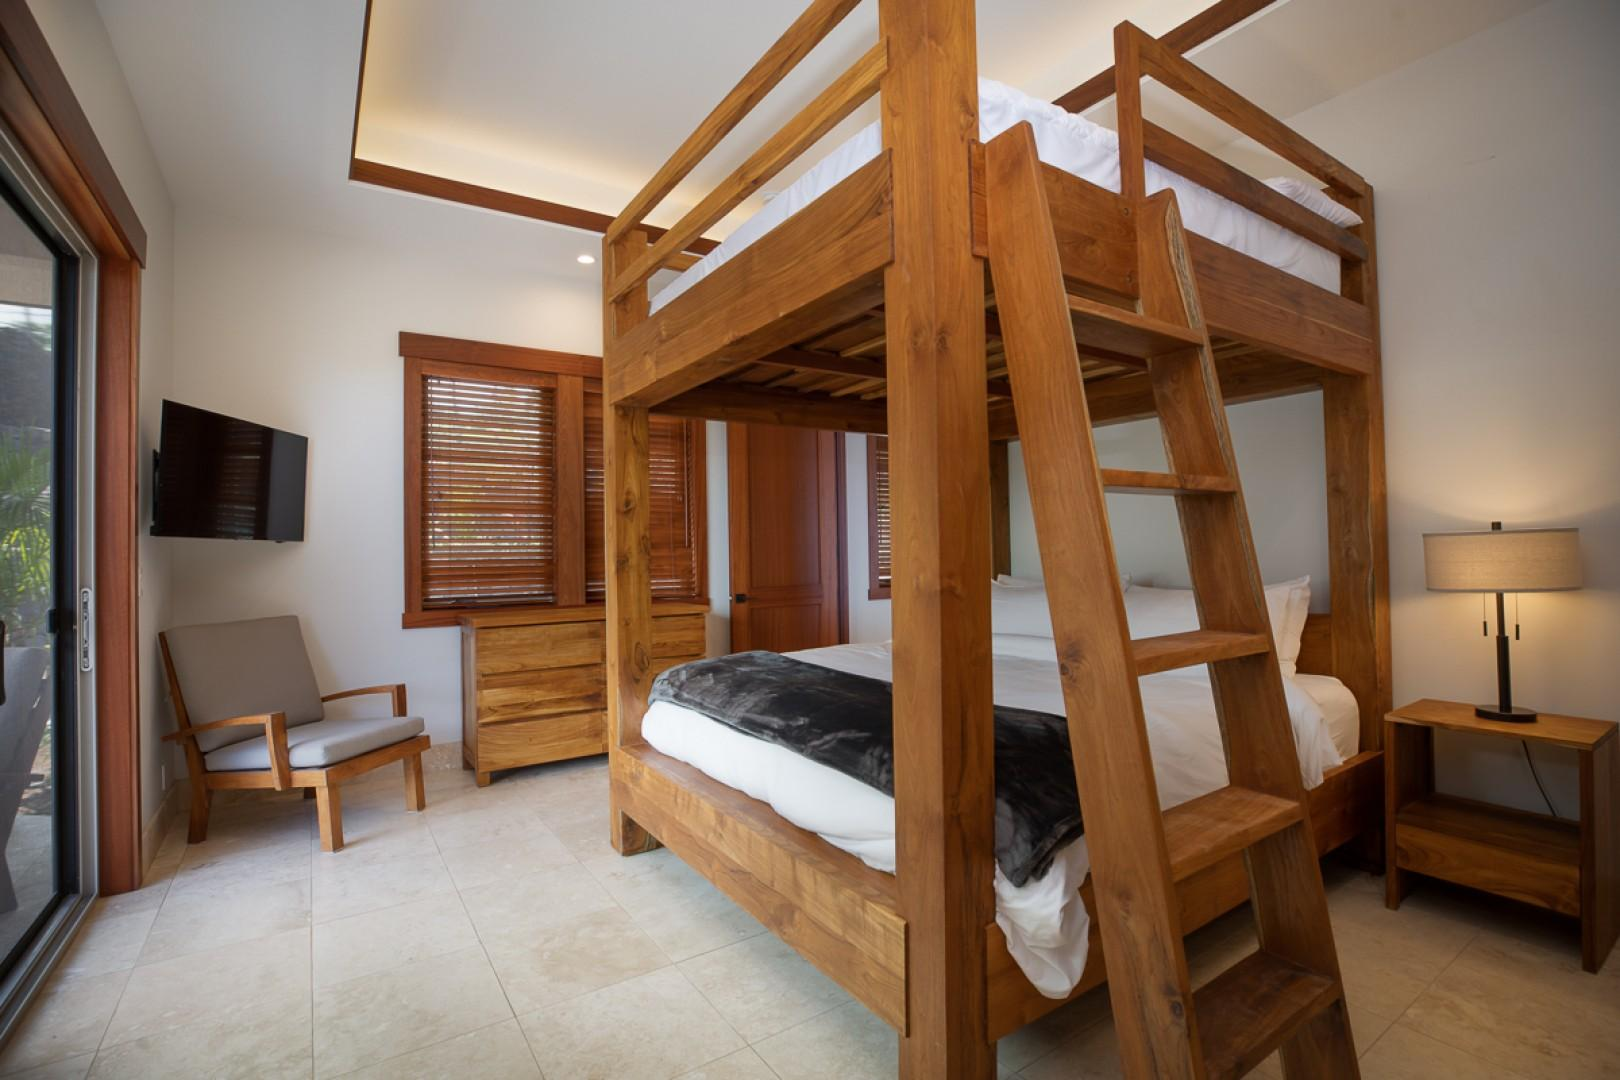 Fourth Bedroom (King Size Bunk Beds!)